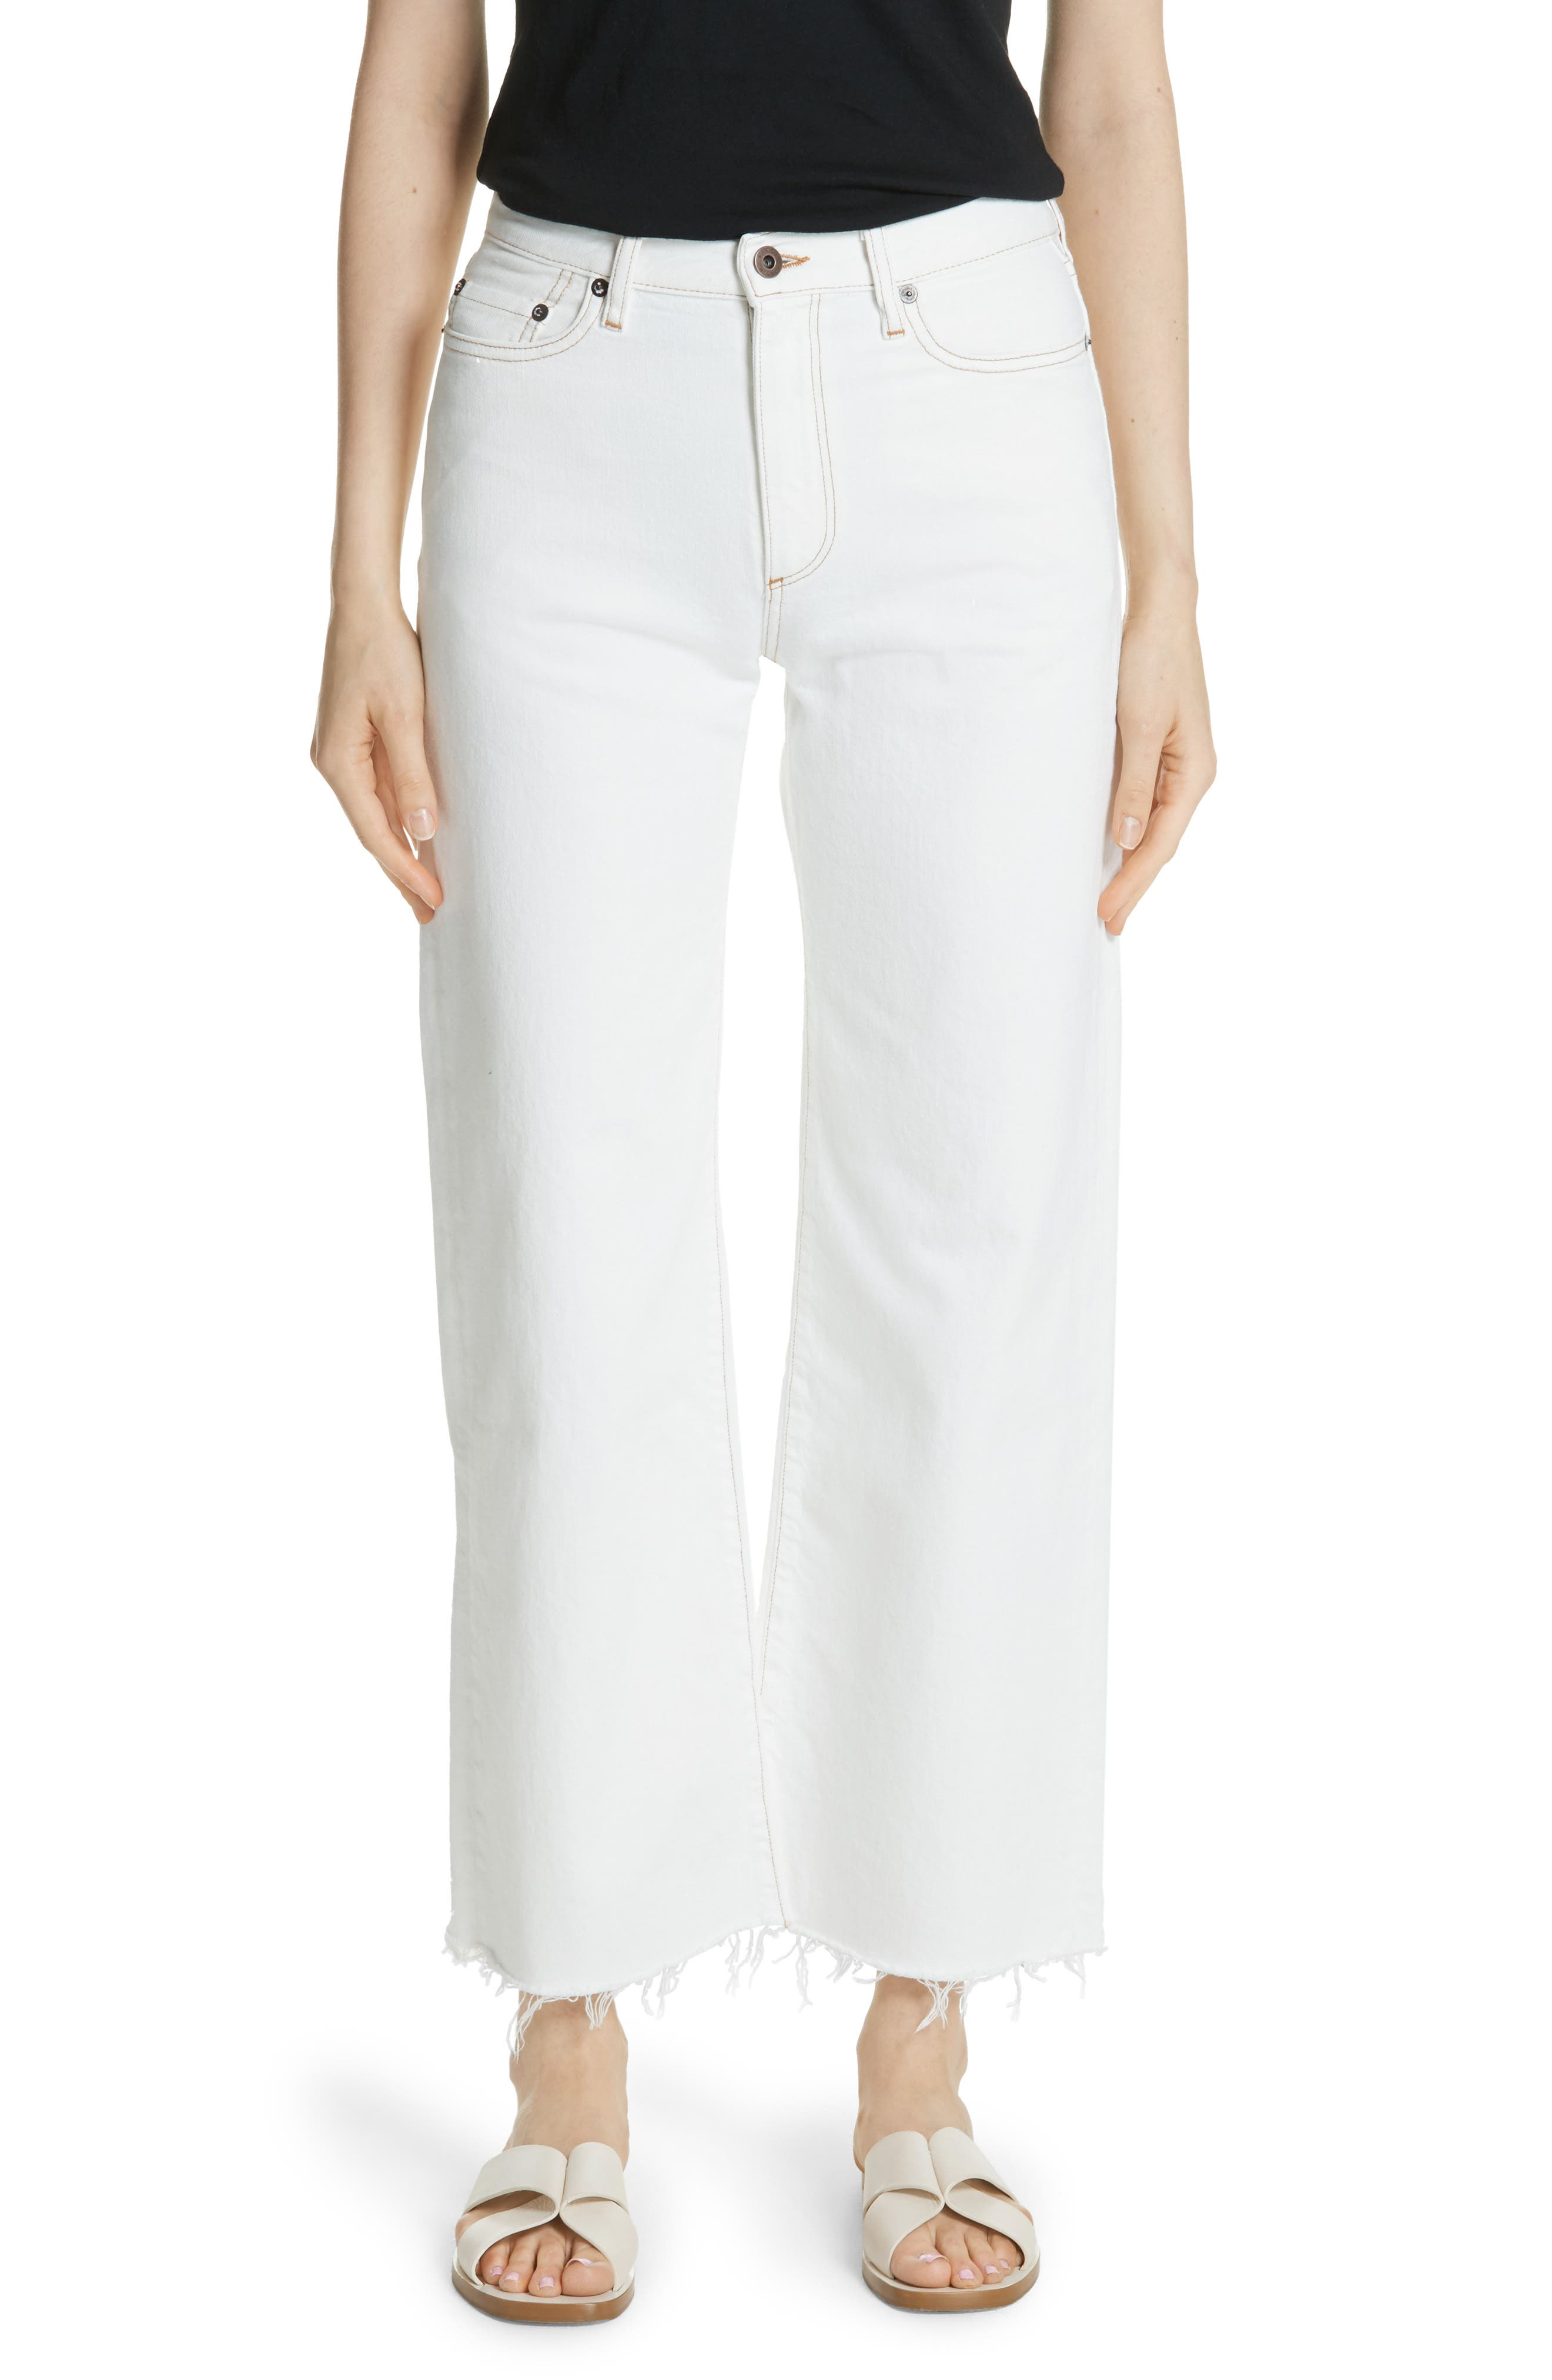 Enid High Waist Wide Leg Jeans,                         Main,                         color, White